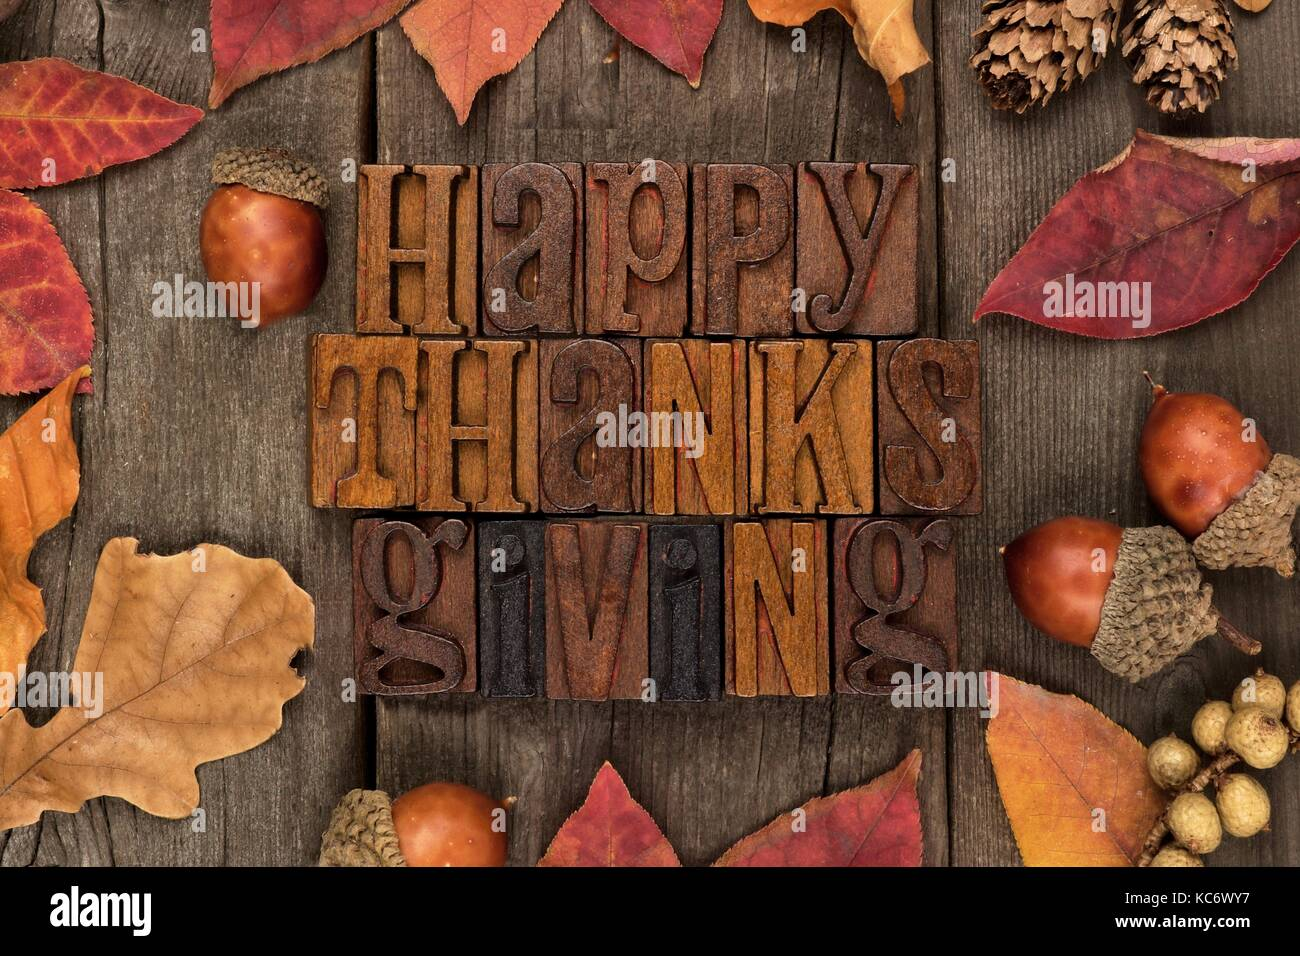 Happy Thanksgiving Spelled With Wooden Letterpress Frame Of Autumn Leaves Over A Rustic Wood Background